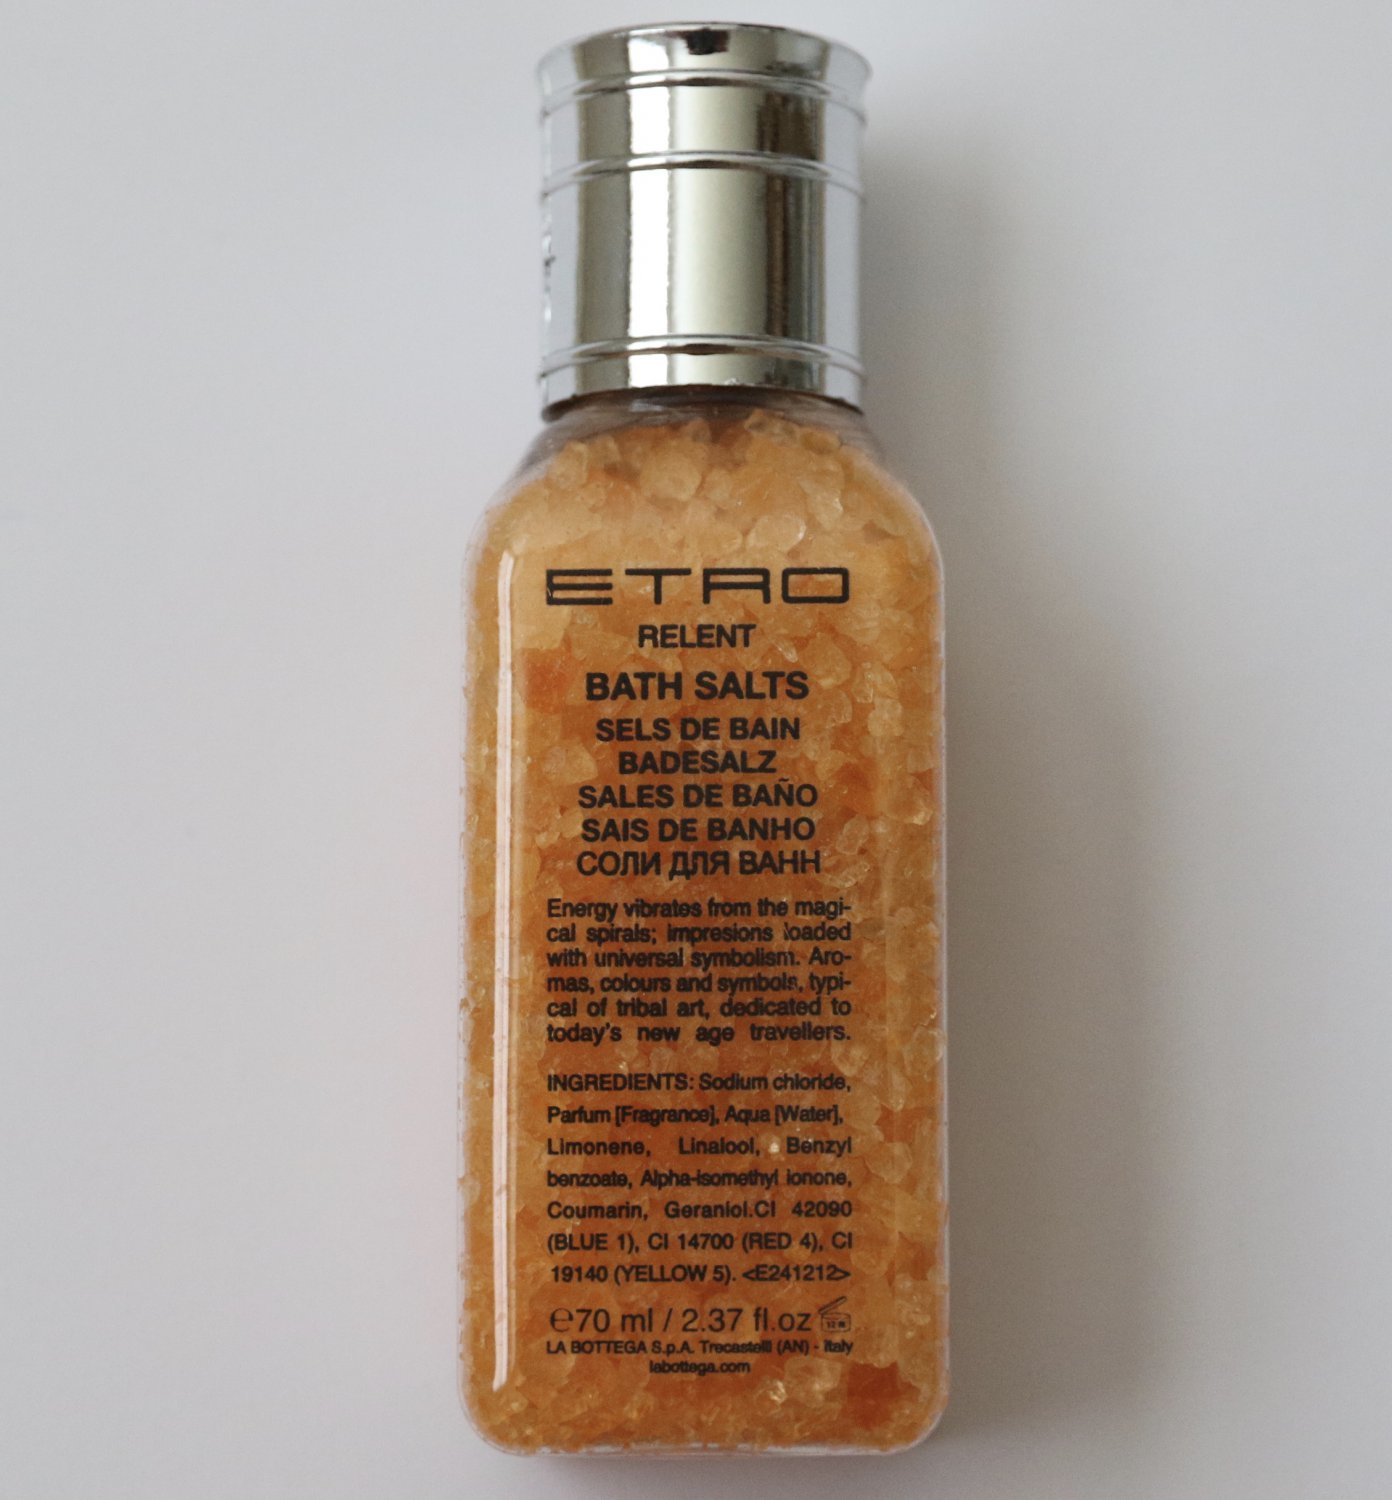 ETRO Relent Bath Salts Lufthansa First Class Made in Italy 70 ml 2.7 oz Travel Size